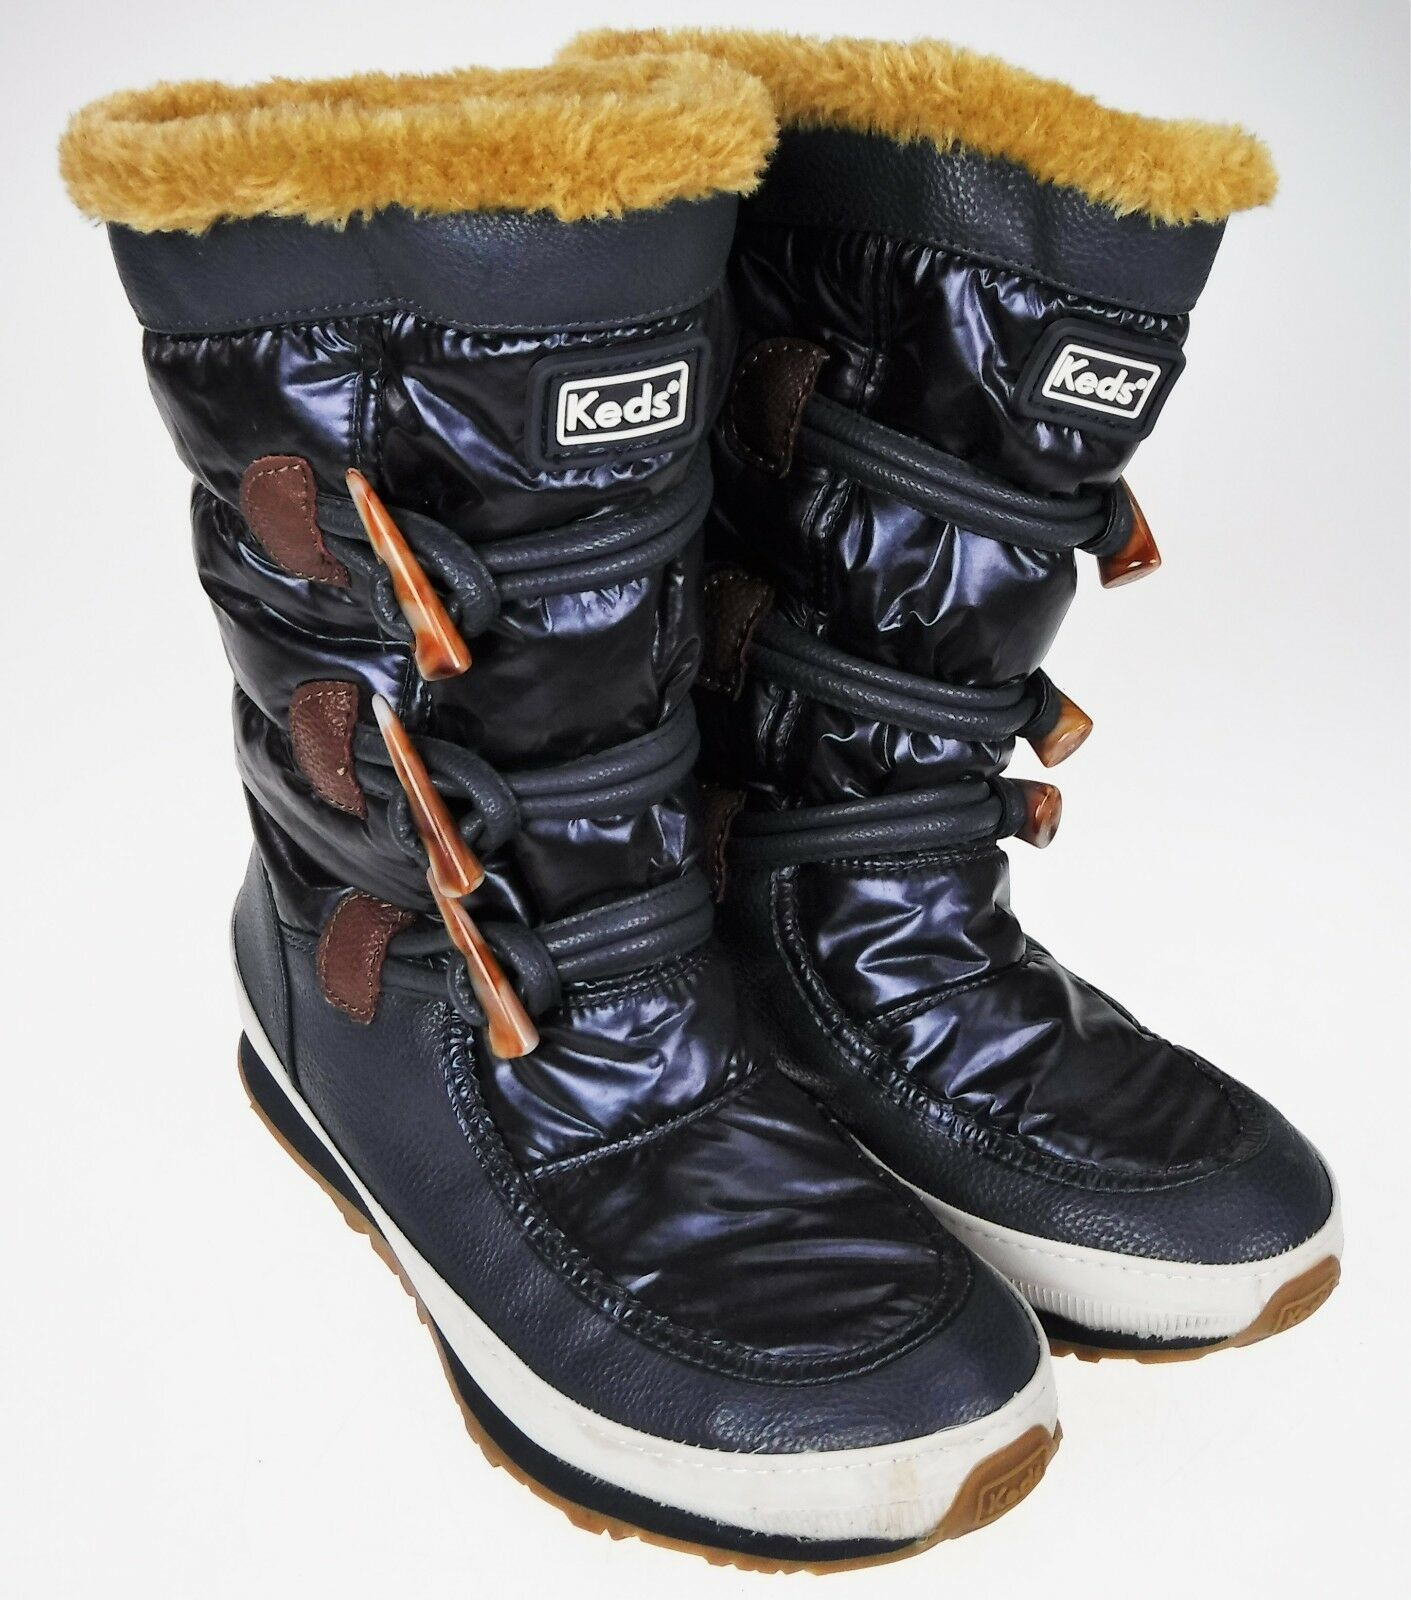 Womens 8 Keds Powder Puff Navy bluee Winter Warm Waterproof Boots Faux Fur 52044